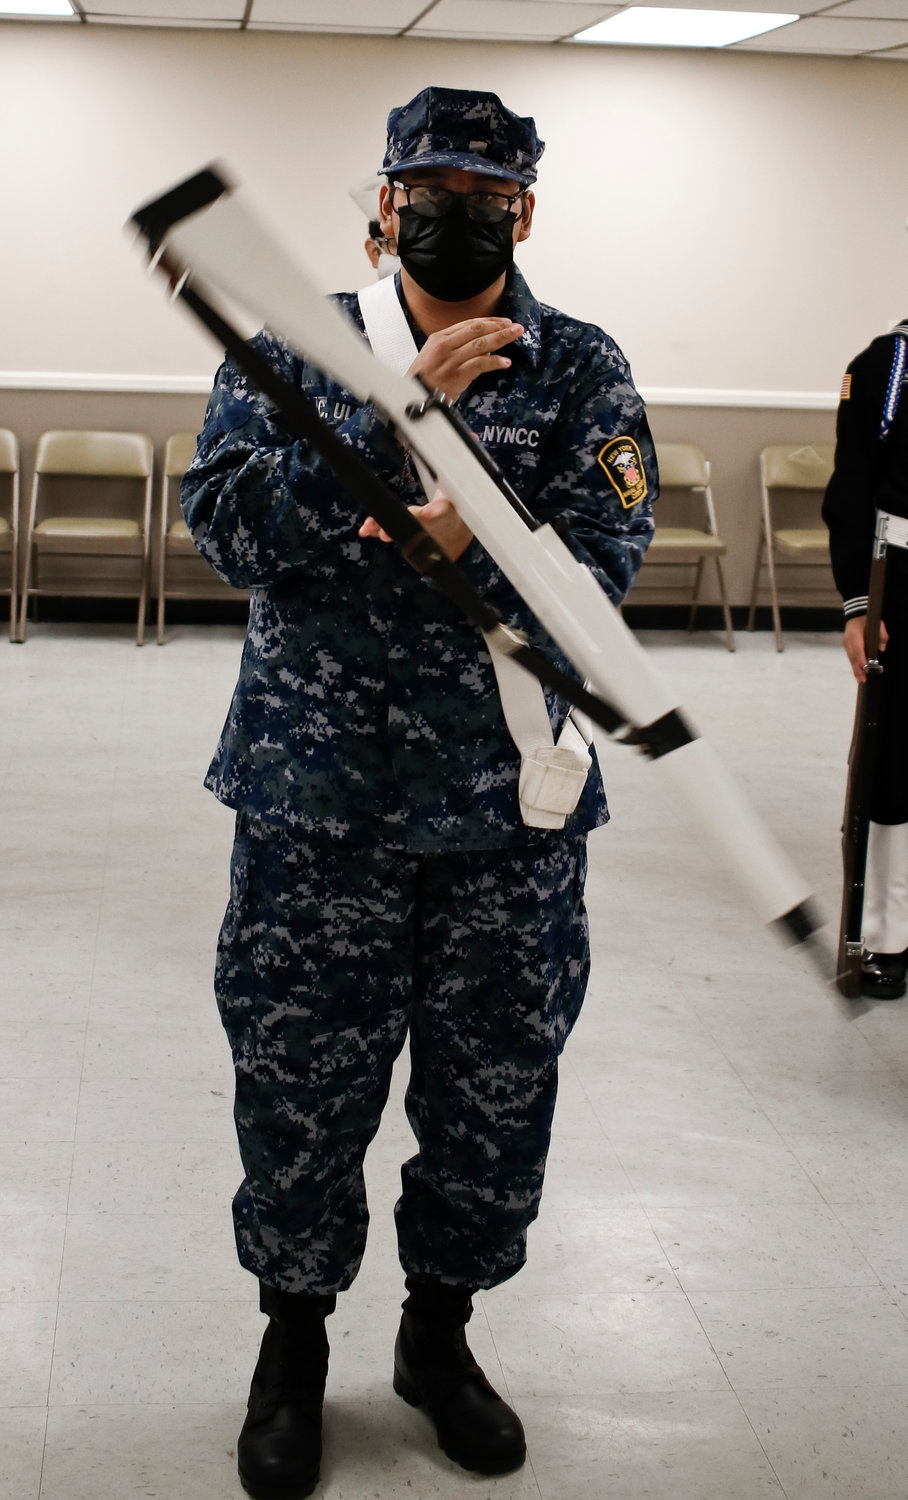 Cadet Christian Ulloa demonstrated his rifle handling skills.